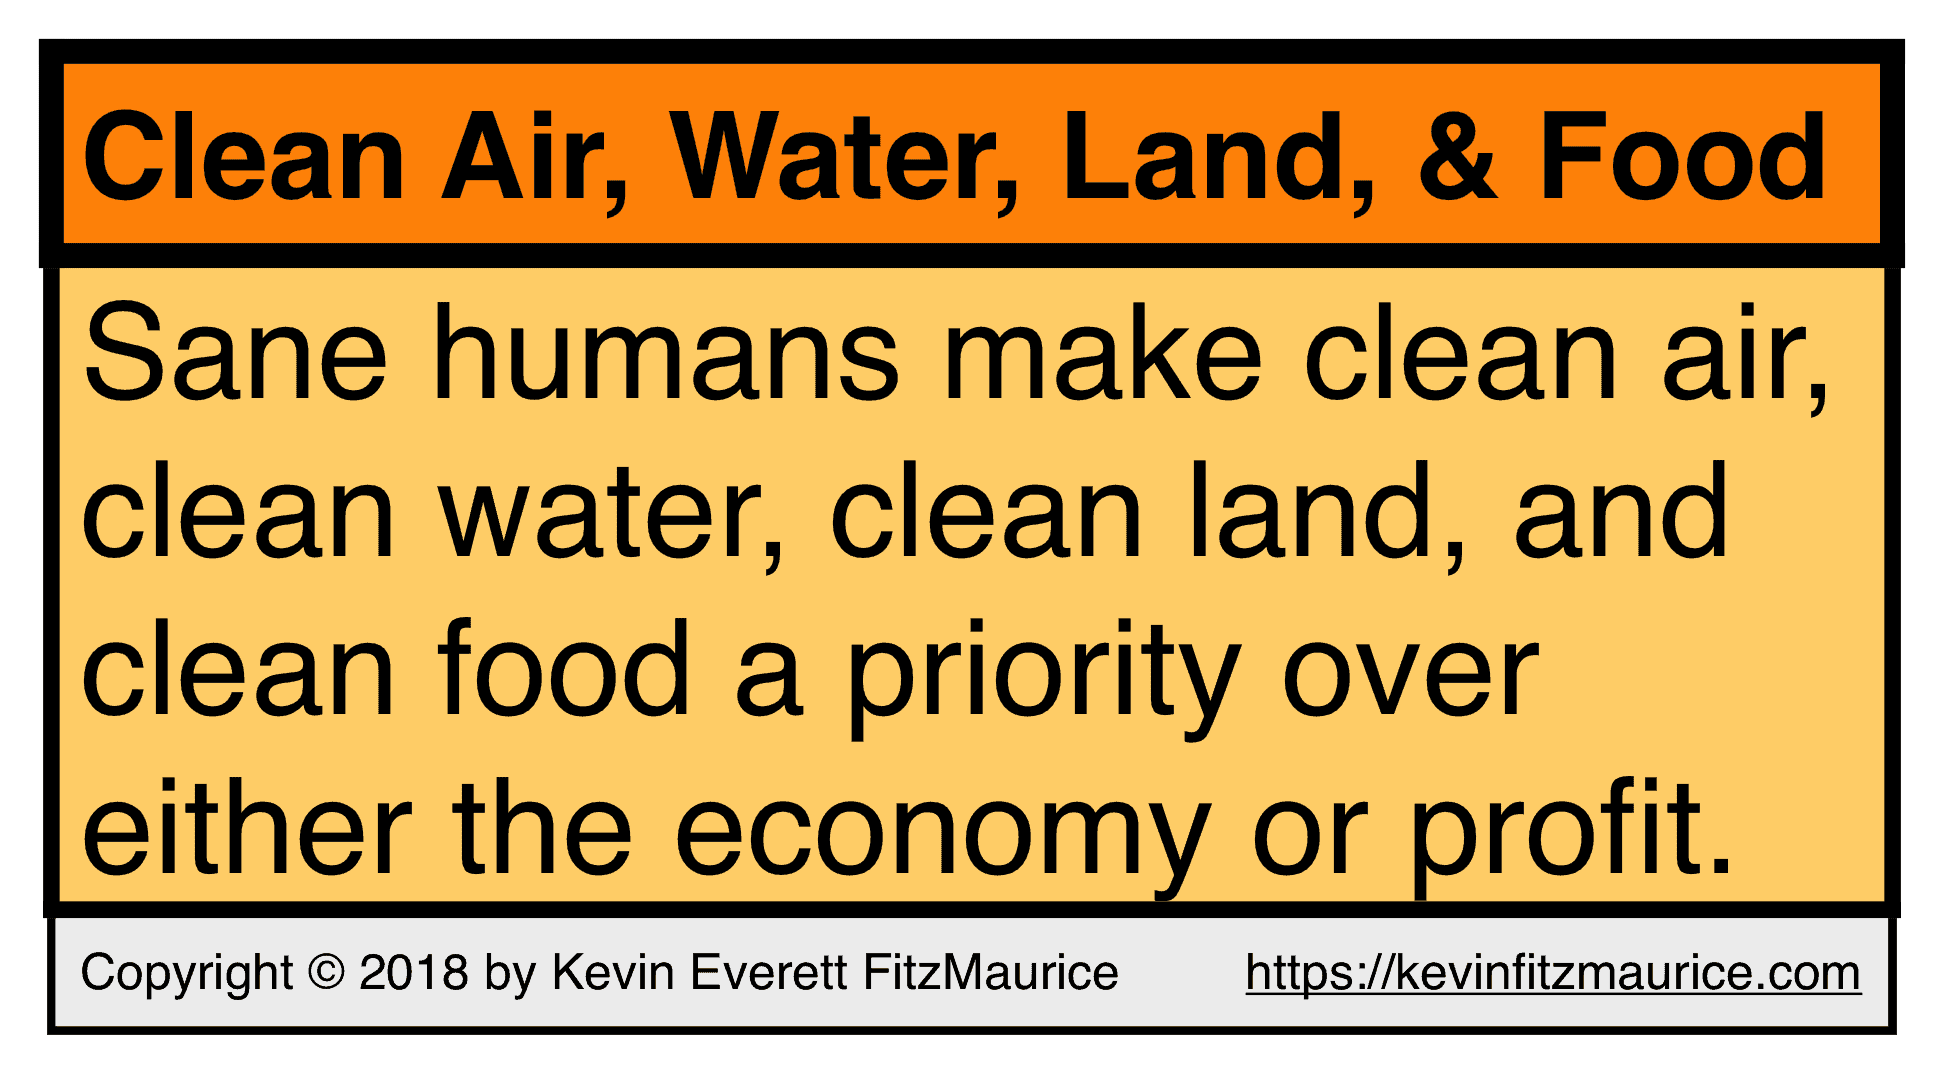 Clean Air & Water Before Profit